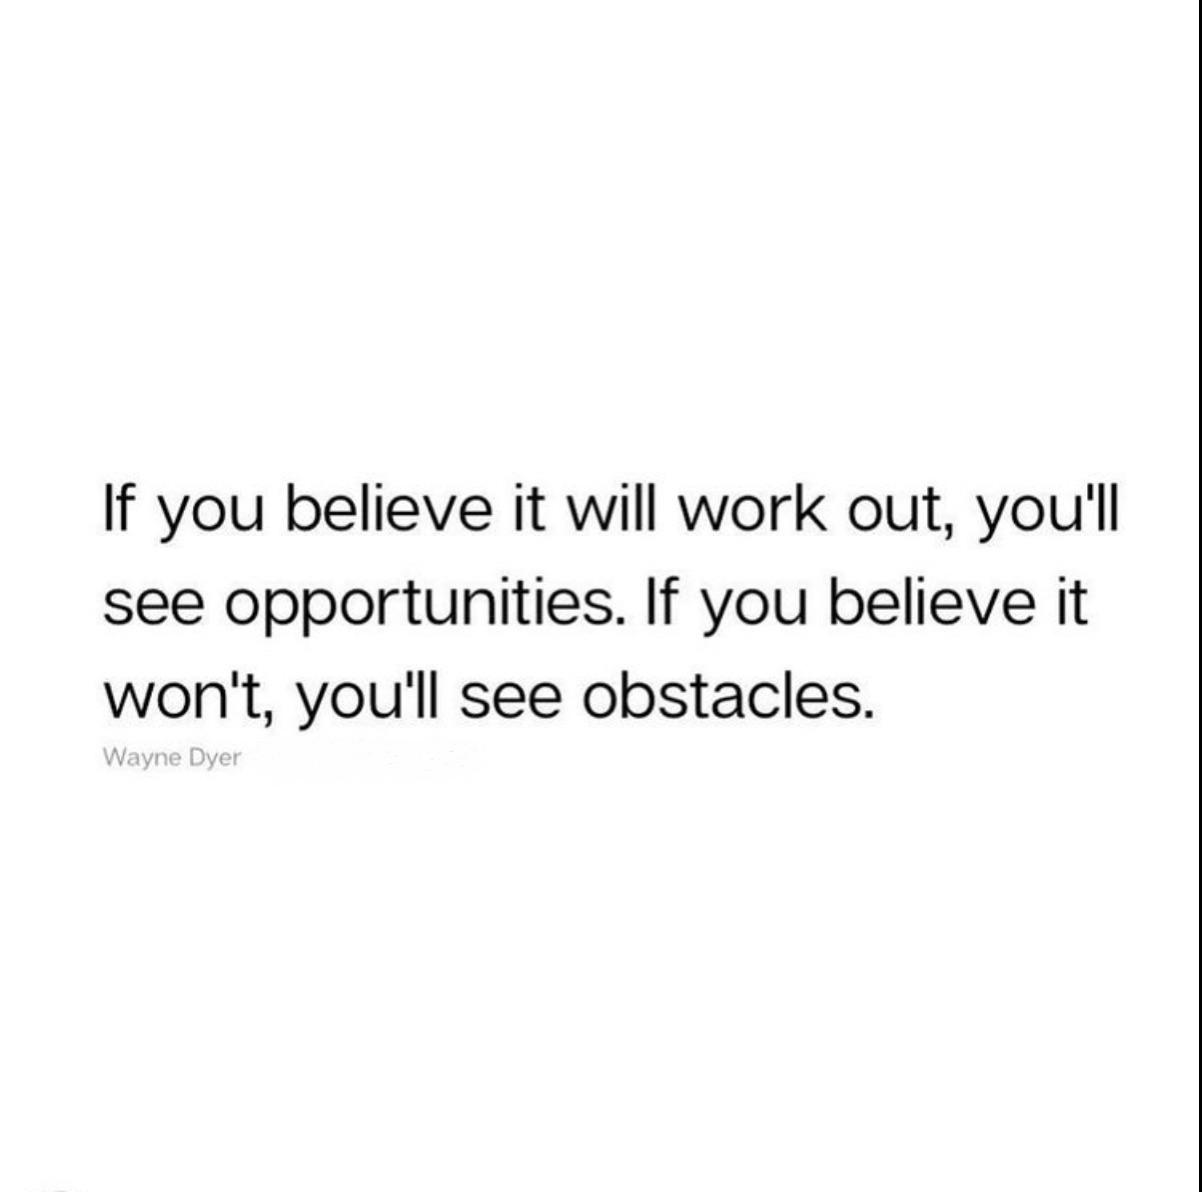 [Image] If you believe it will work out, you'll see opportunities. if you believe it won't, you'll see obstacles. – Wayne Dyer